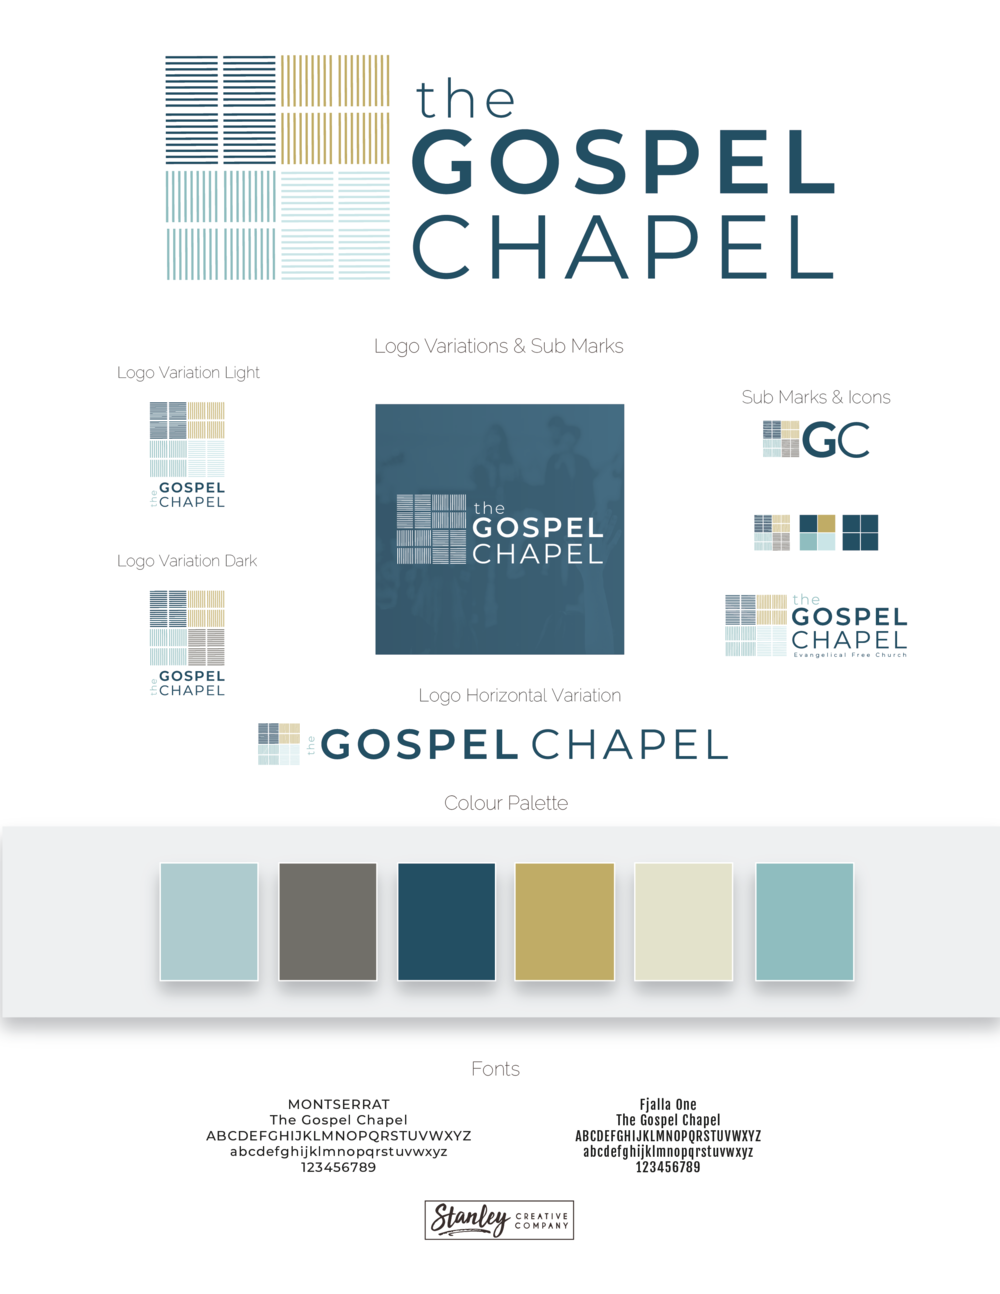 Brand Board for The Gospel Chapel by Stanley Creative Company